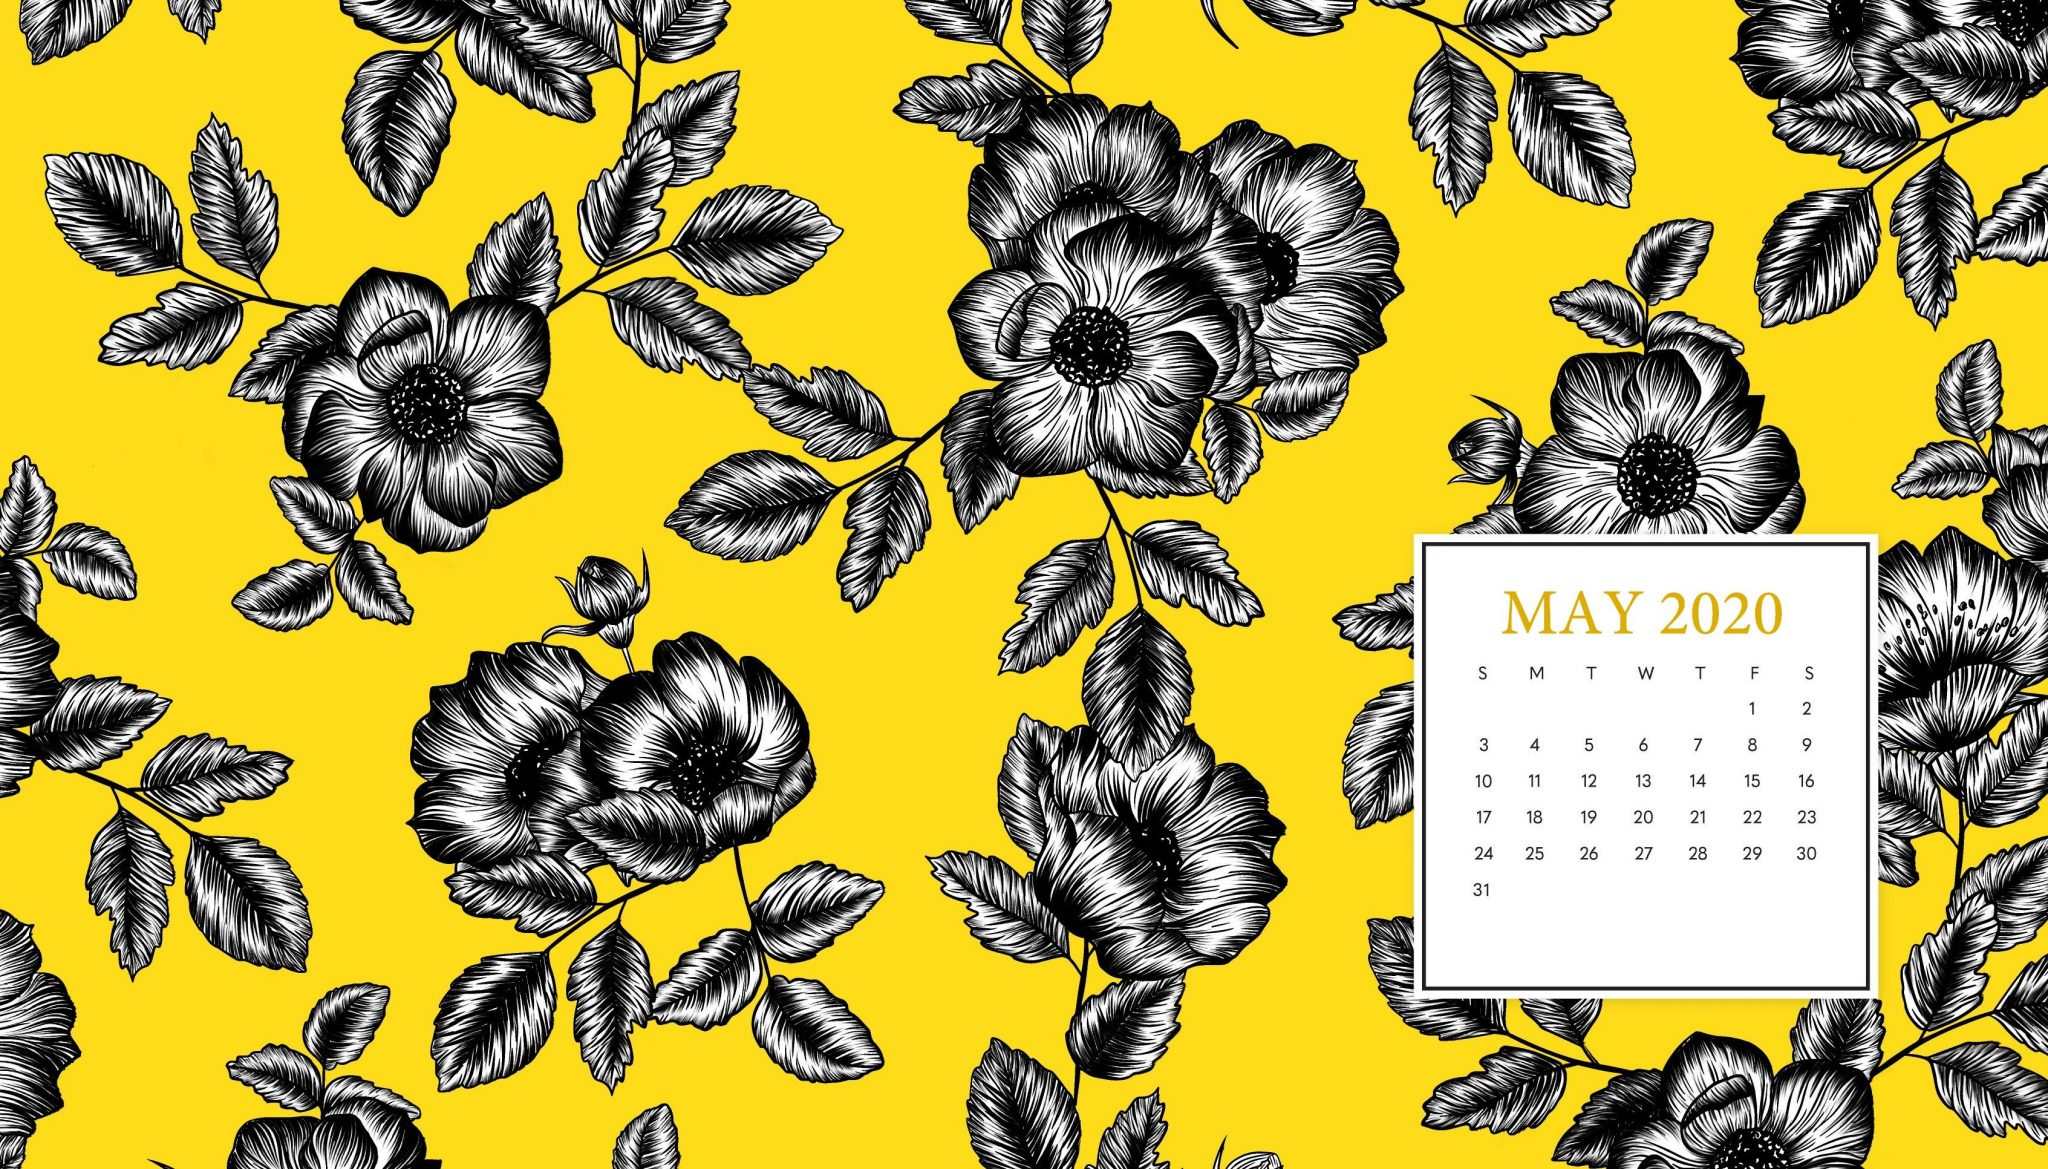 May 2020 Calendar Backgrounds